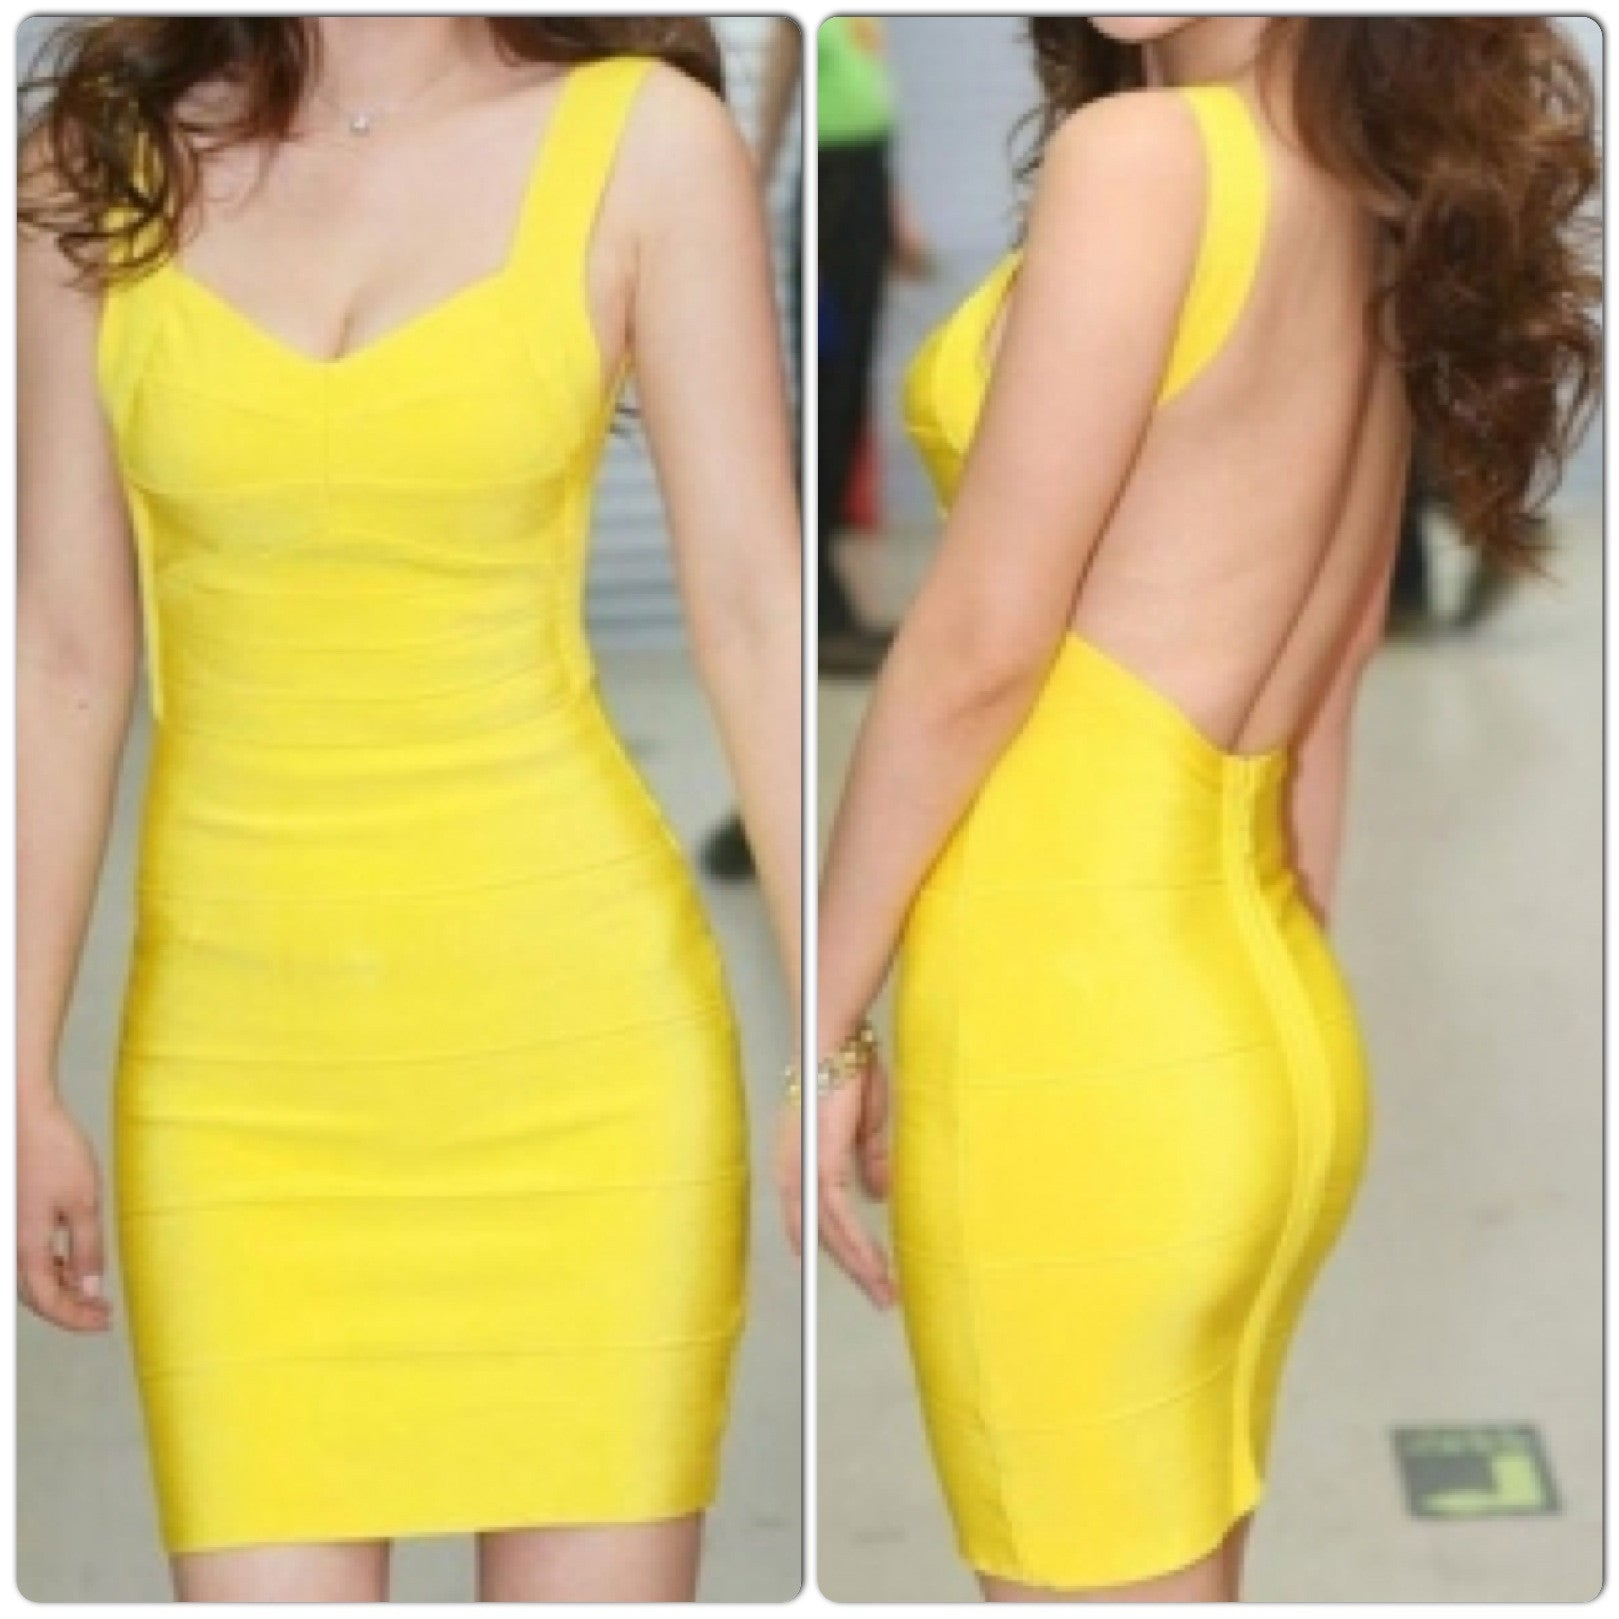 Celebrity Style Blunging Backout Bandage Dress-Yellow - IBL Fashion - 1